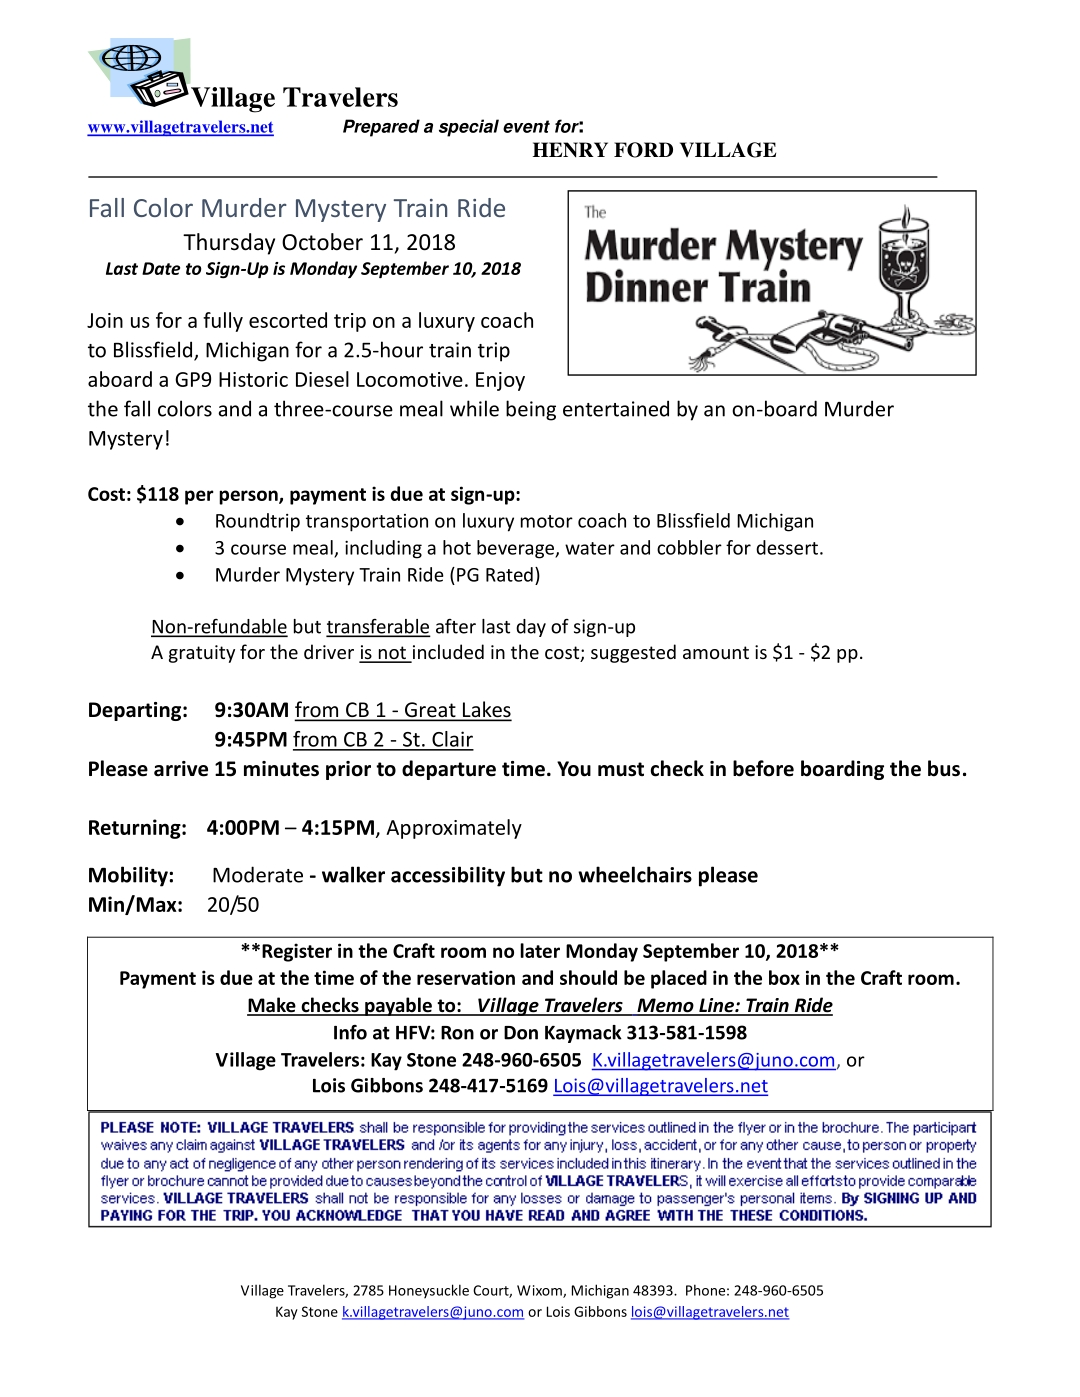 Fall Color Murder Mystery Train Ride — Village Travelers